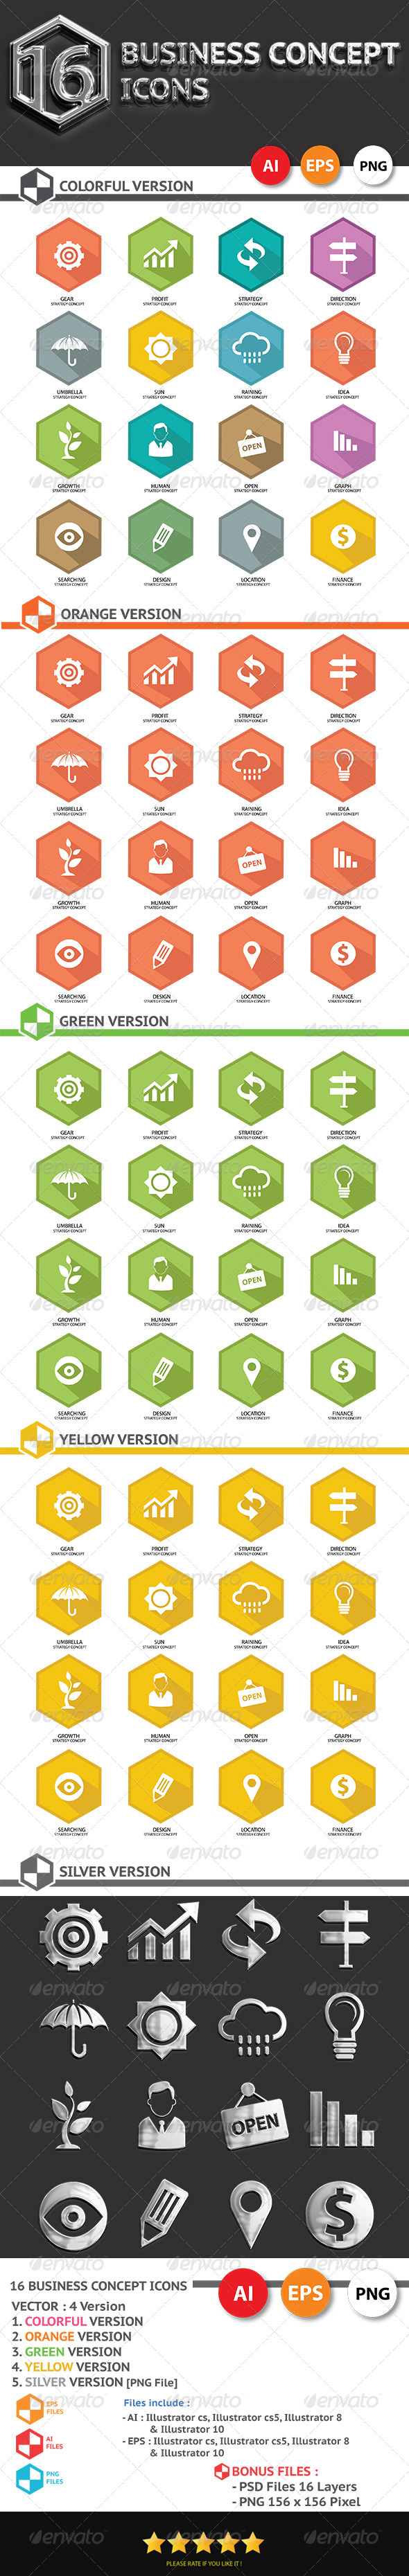 GraphicRiver 16 Business Concept Icons 6815542